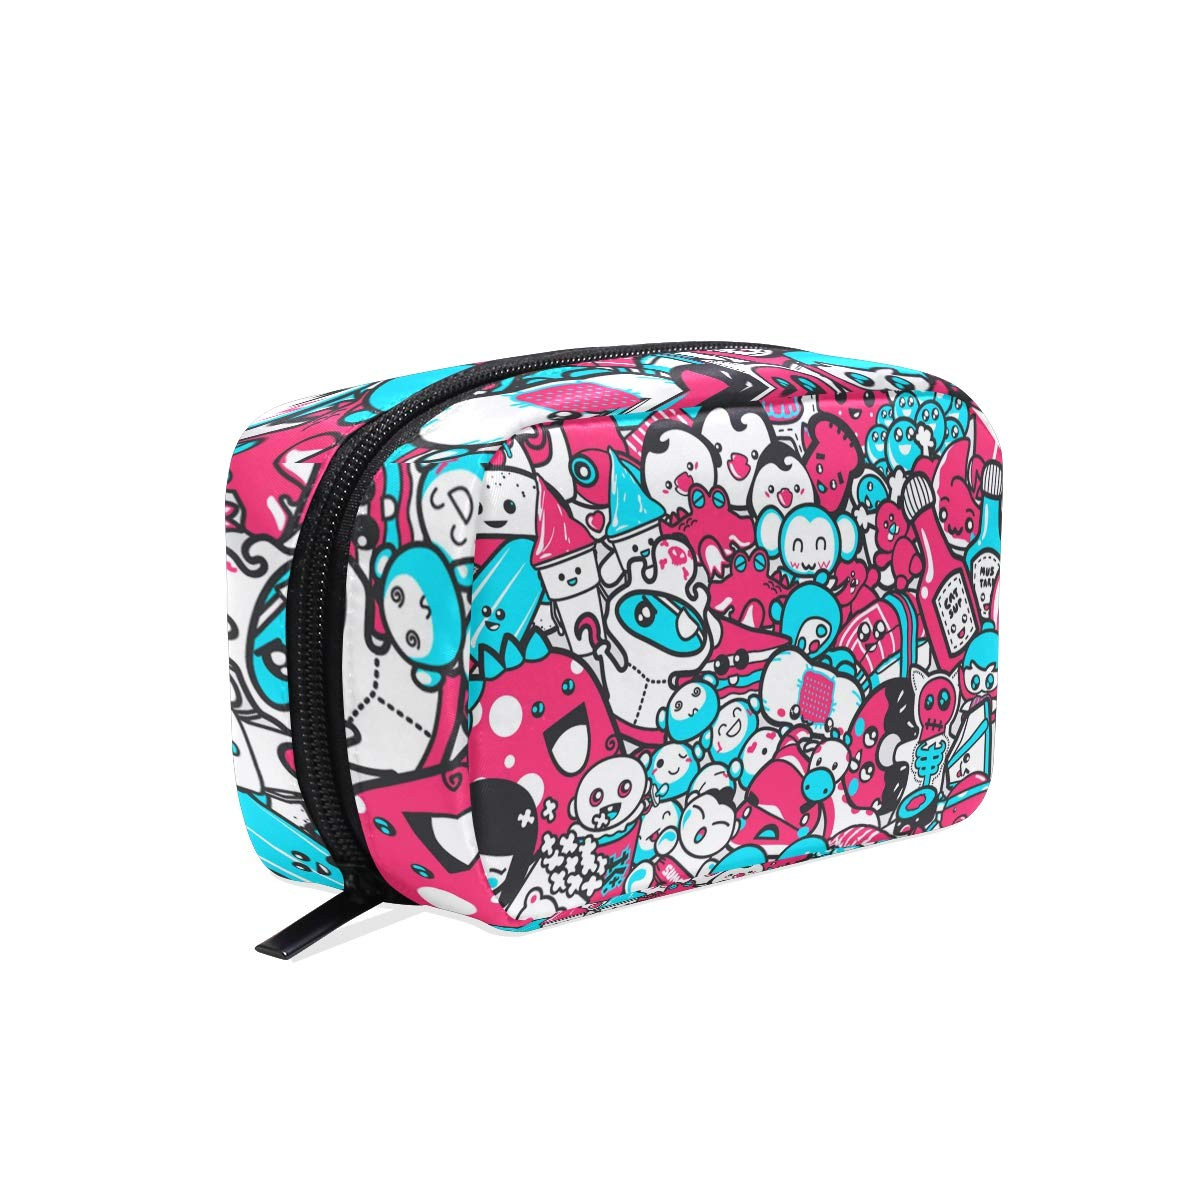 Amazoncom Cosmetic Bag Portable And Suitable For Travel